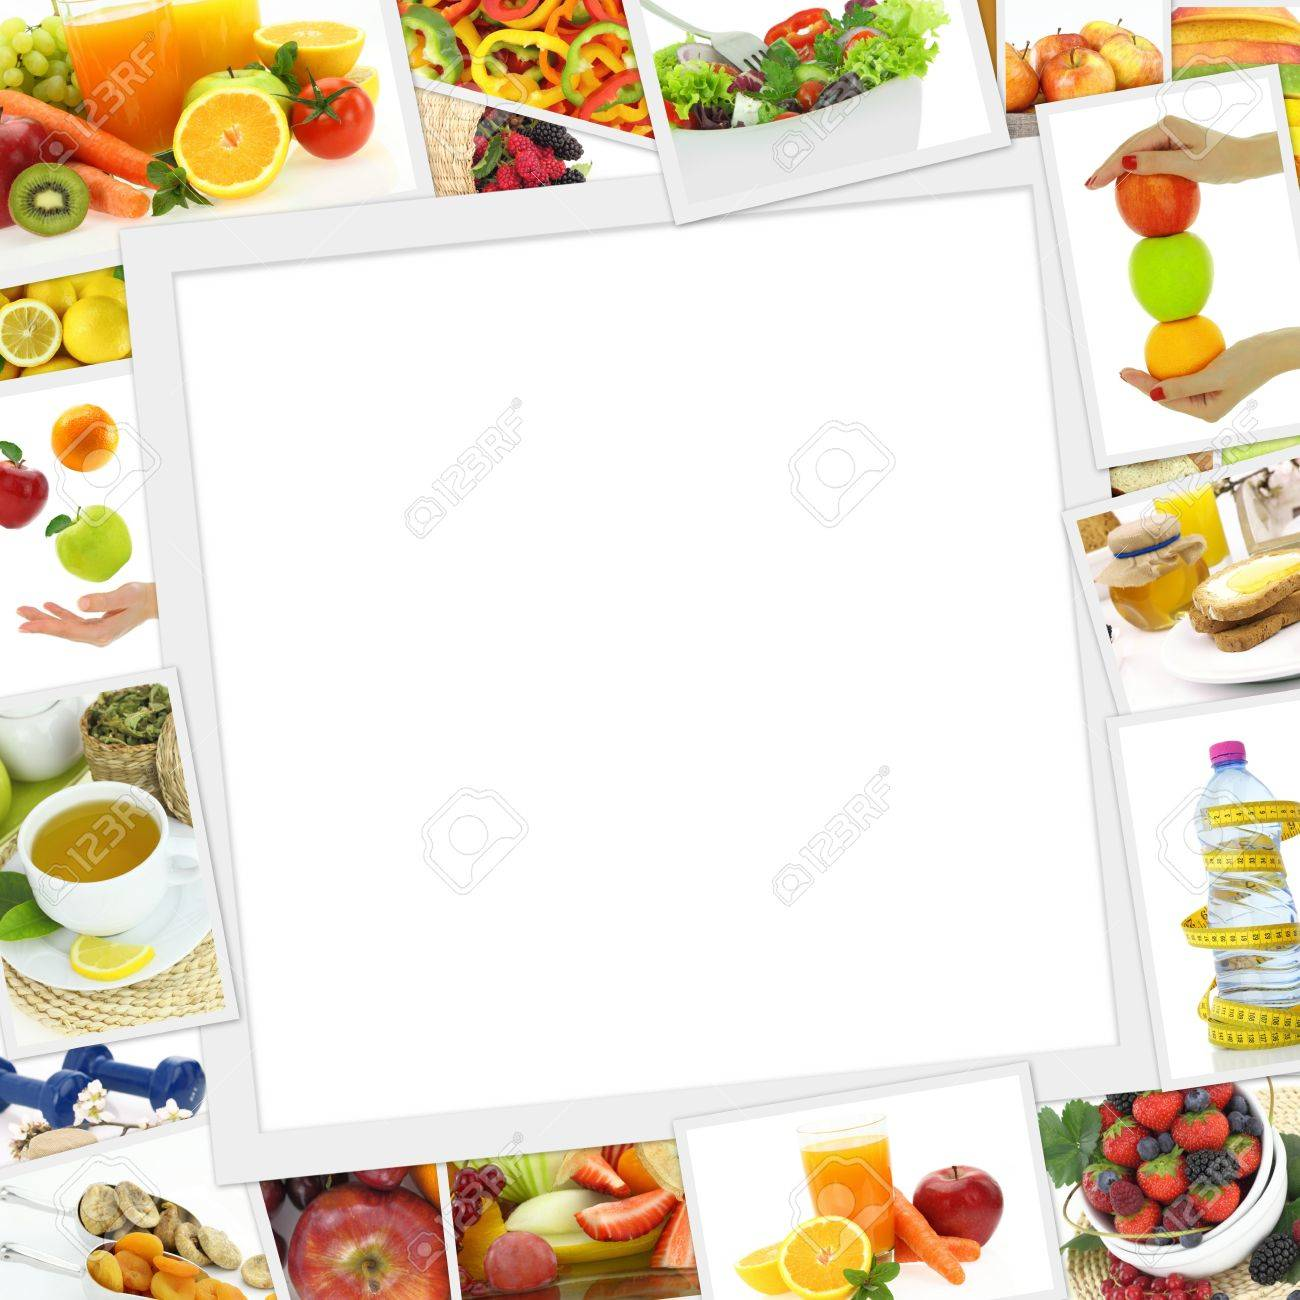 Collection of healthy food photos with copy space Stock Photo - 30045160